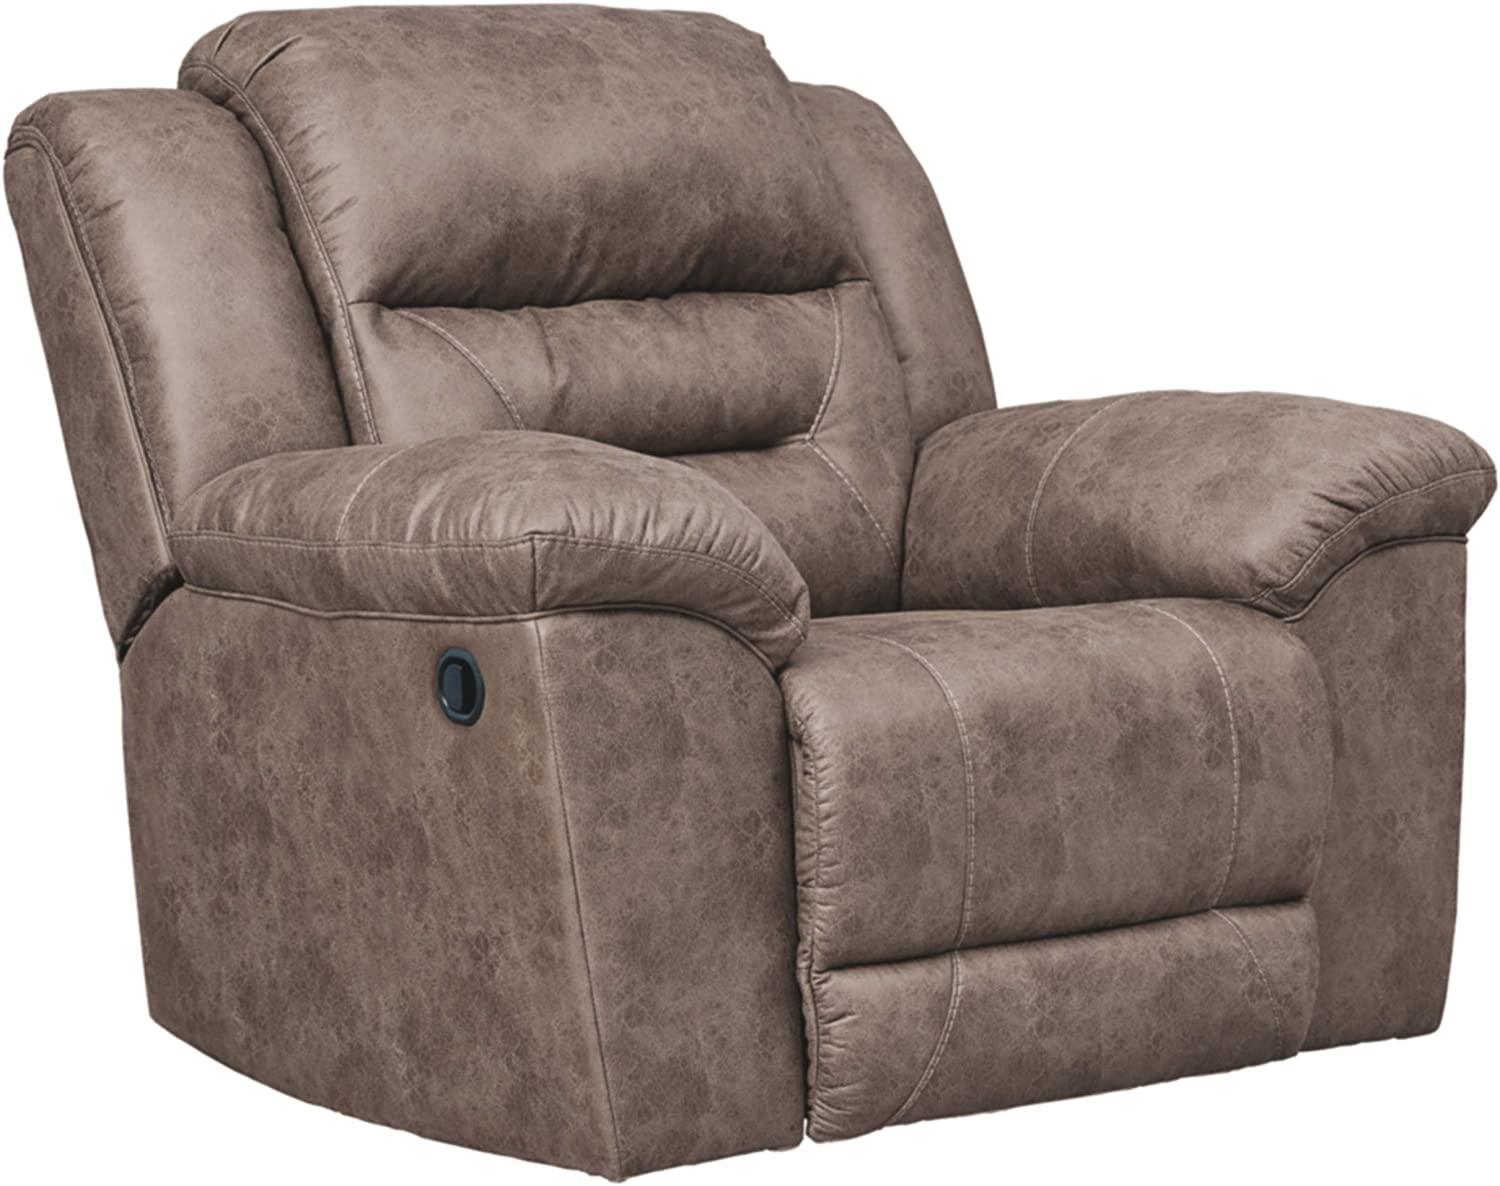 Signature Design by Ashley - Stoneland Faux Leather Rocker Recliner - Pull Tab Reclining, Light Brown